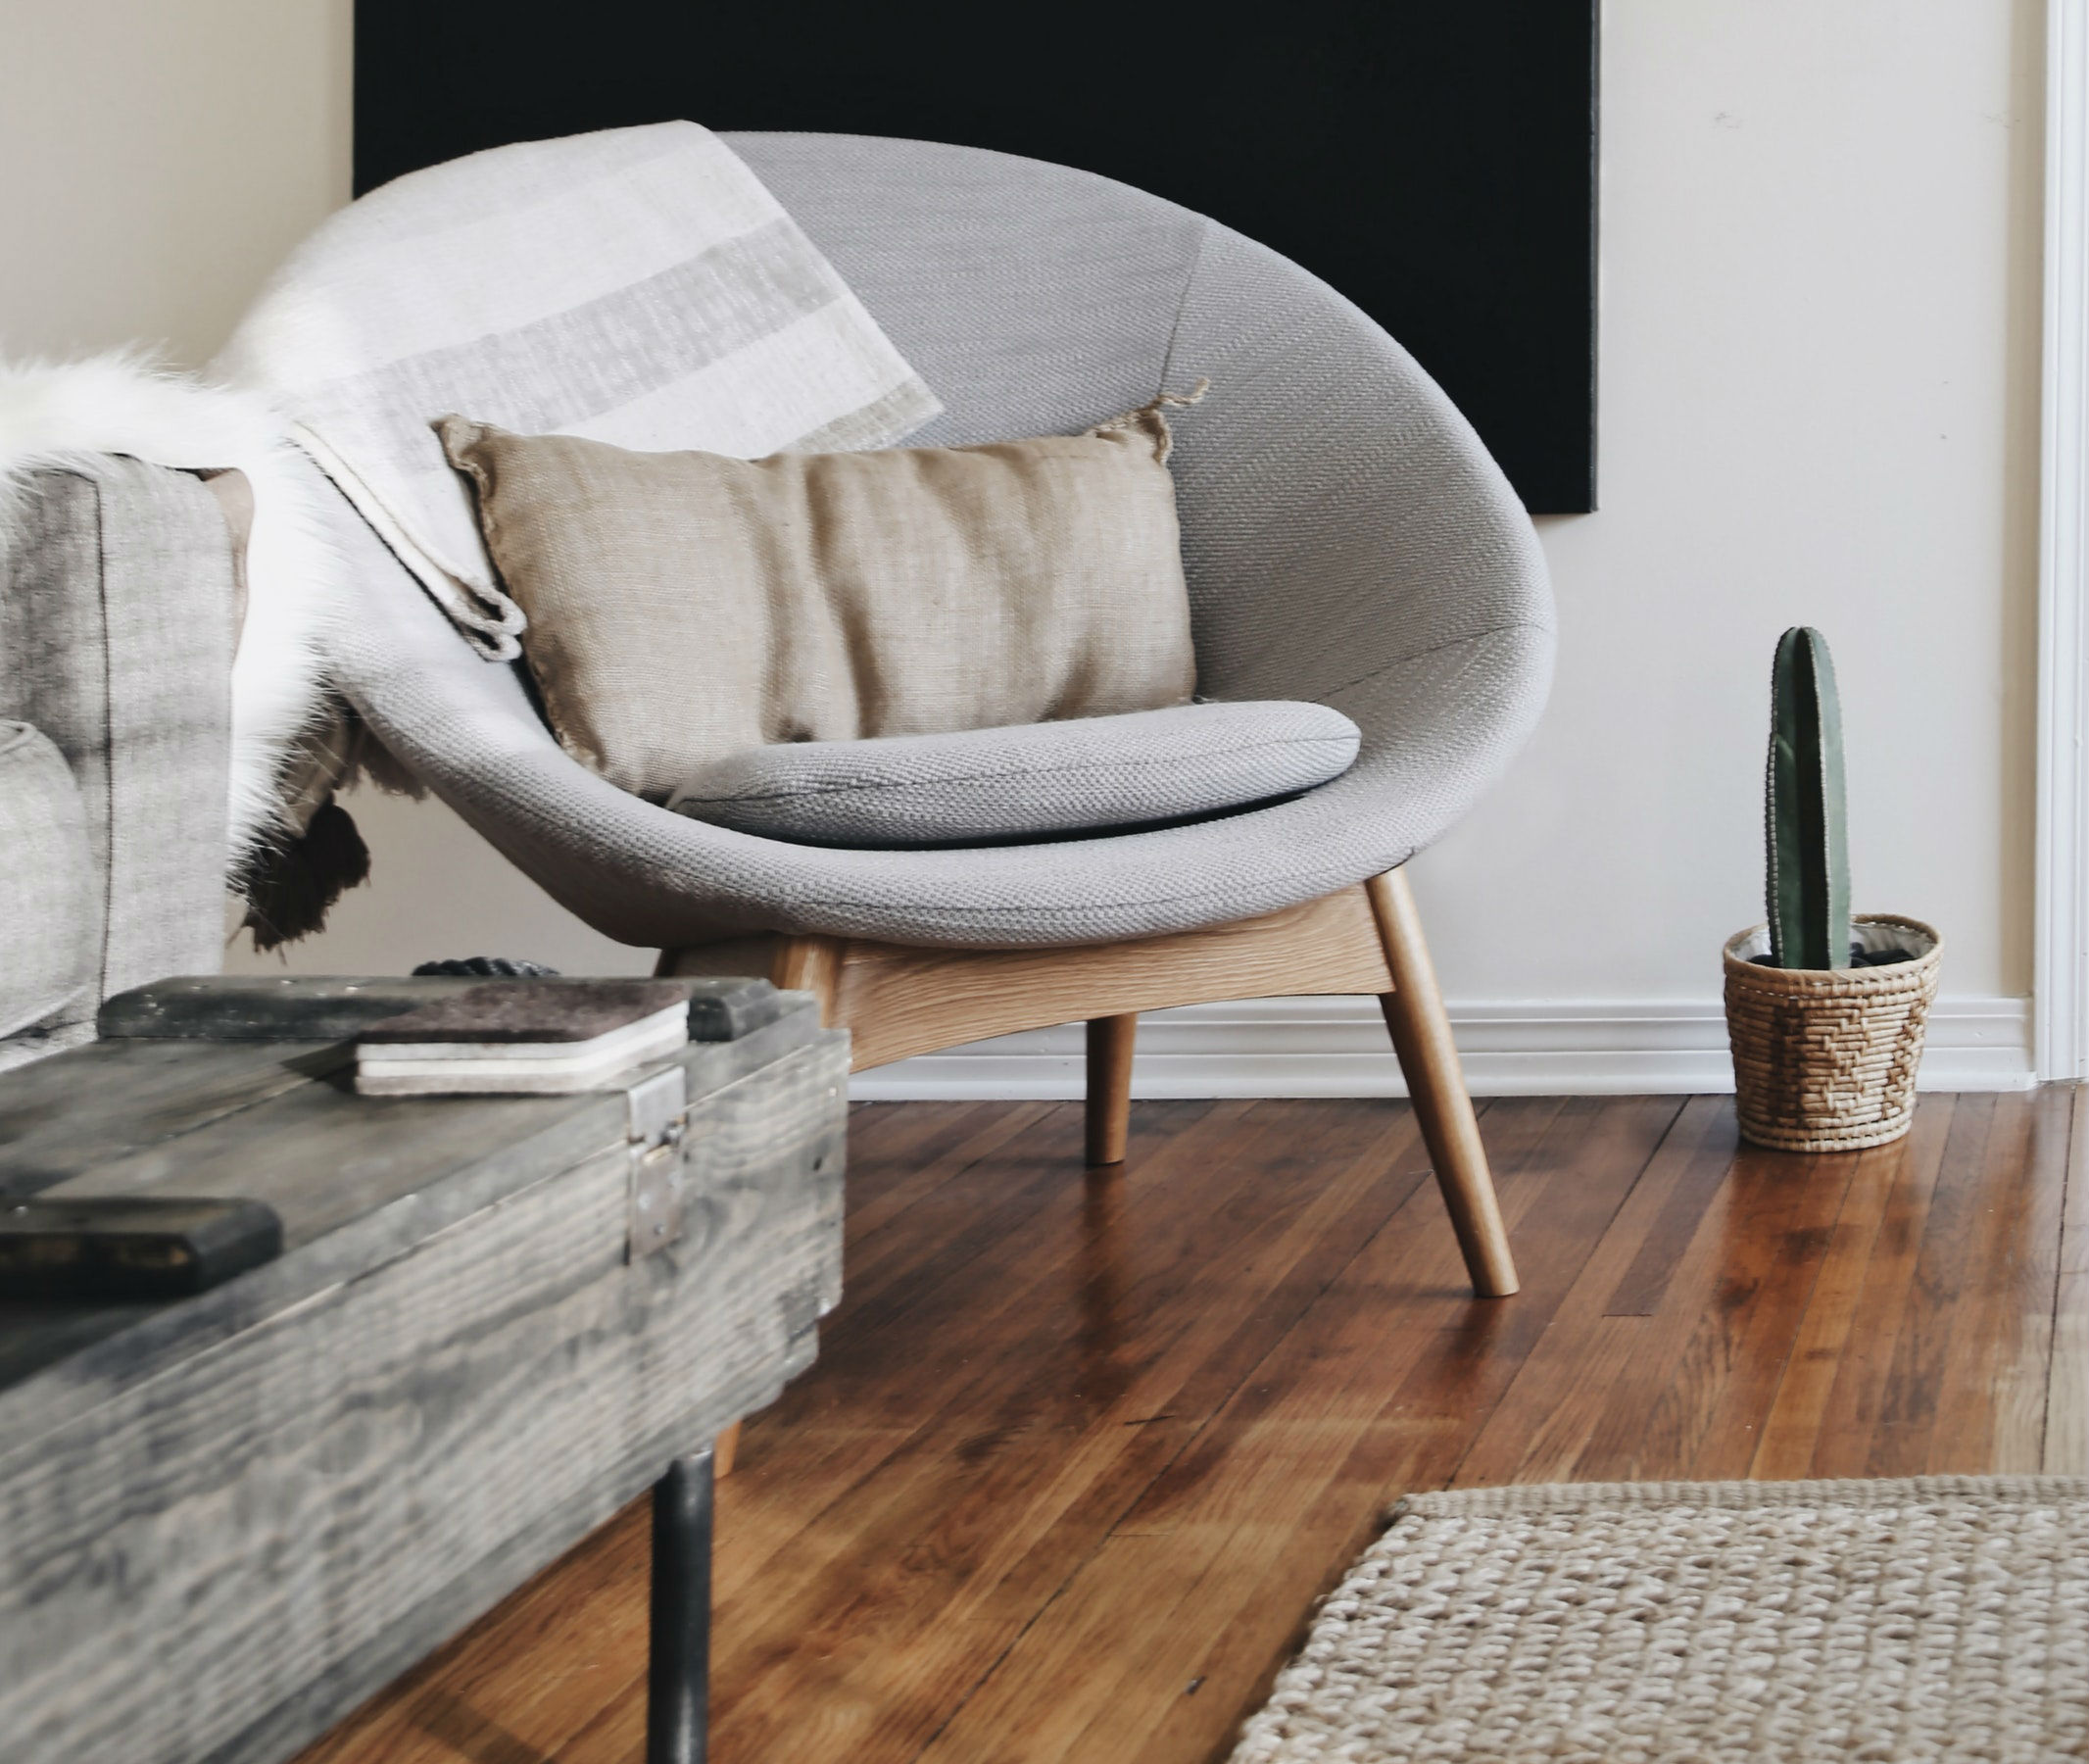 Fabulous Floors The Trends in Flooring for 15   Effective Agents